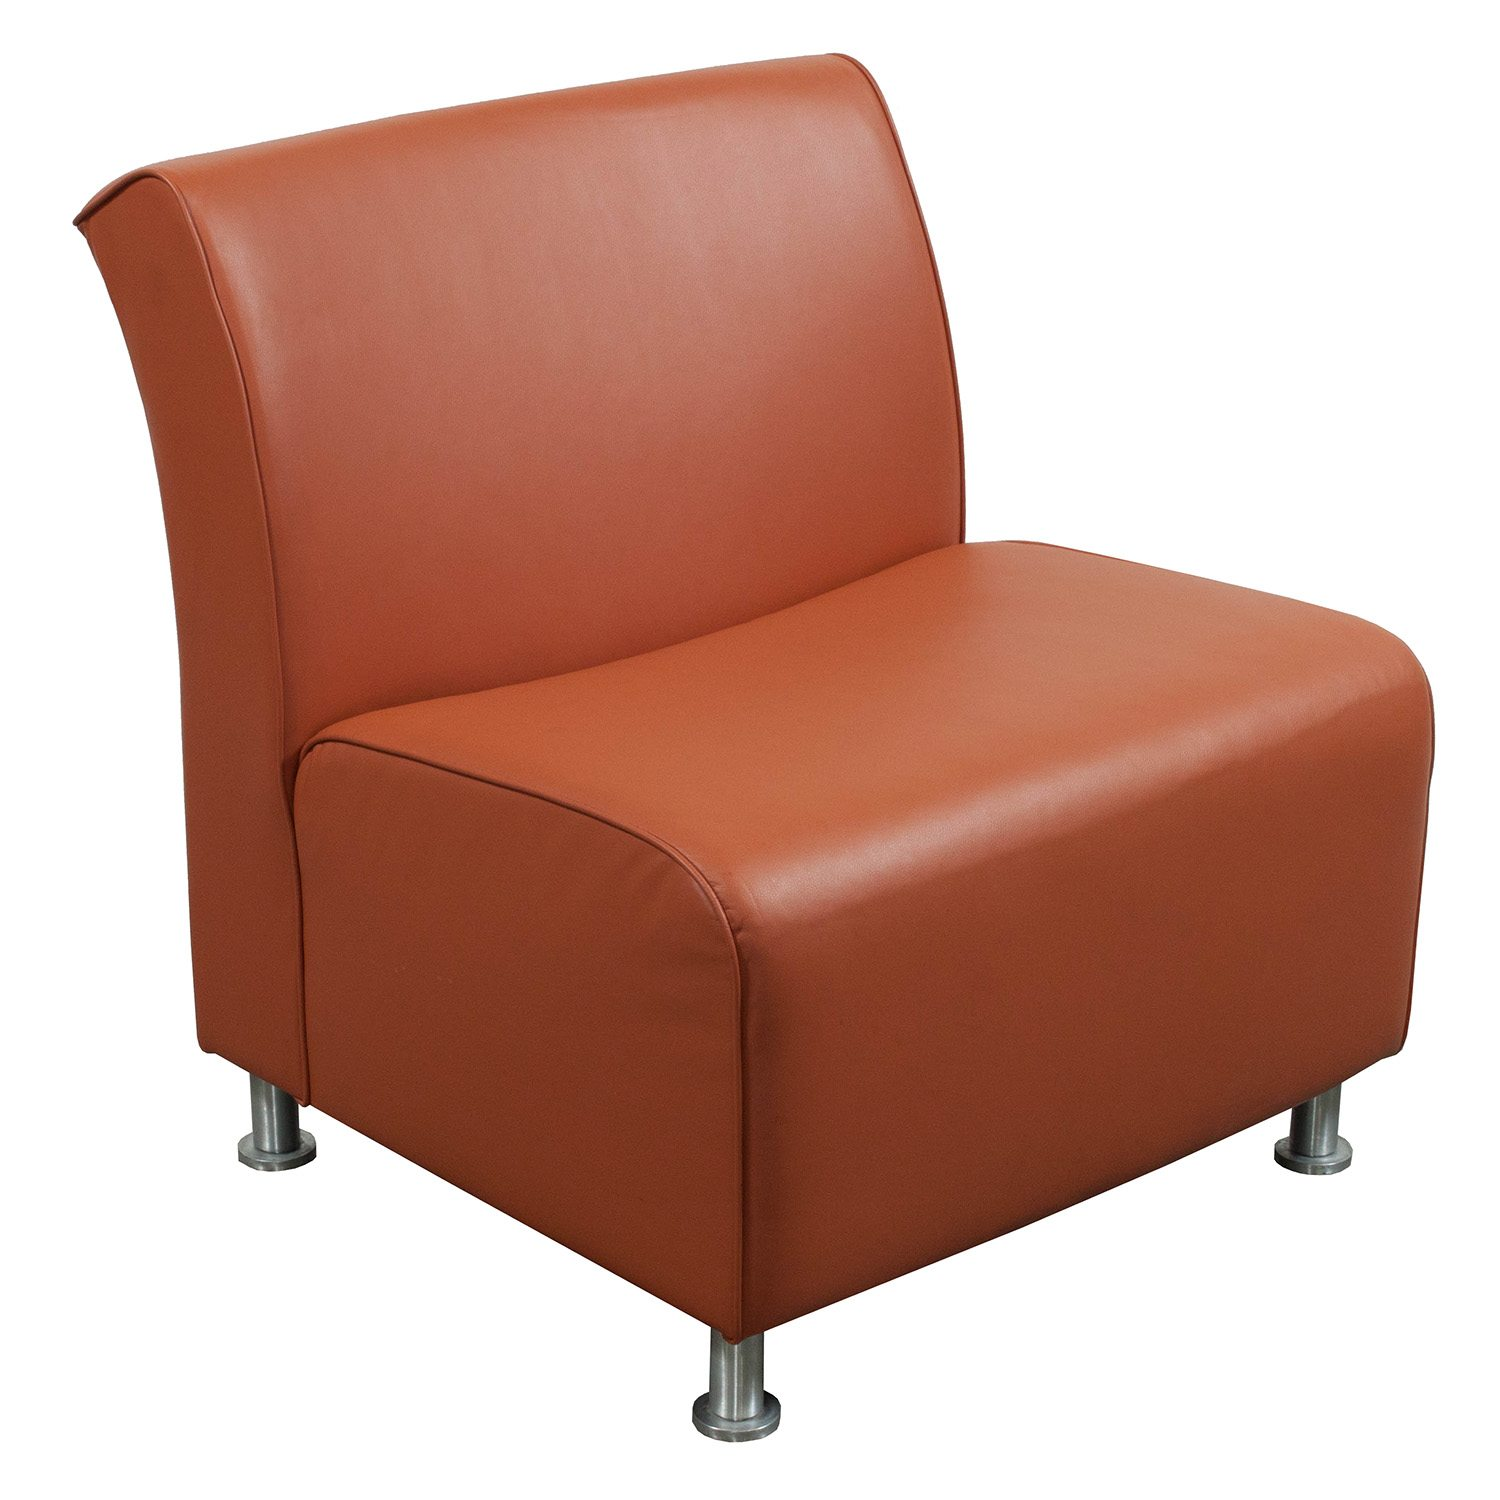 Steelcase Jenny Used Leather Reception Chair Orange